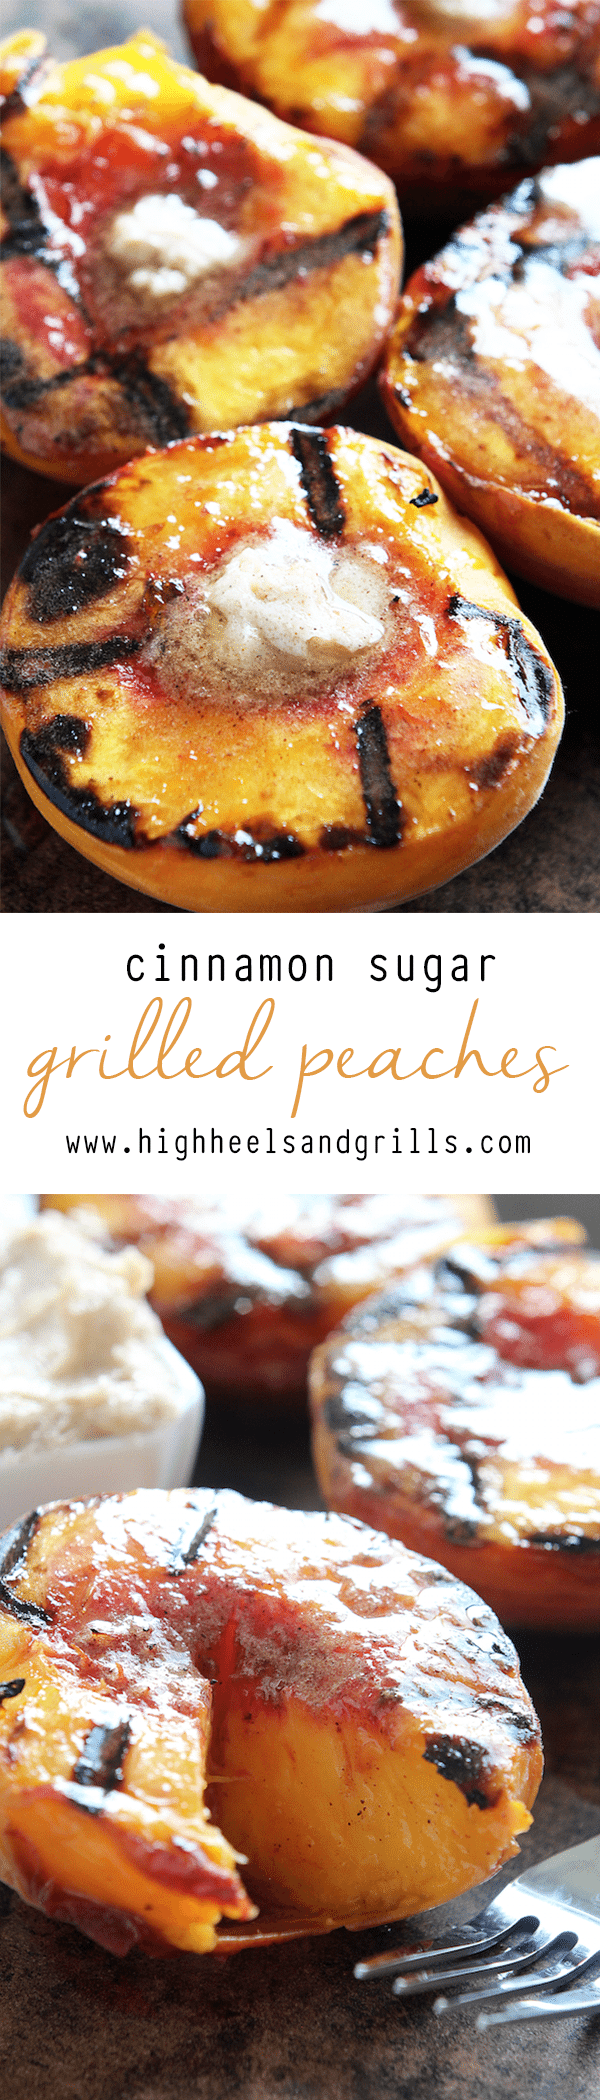 Cinnamon Sugar Grilled Peaches Collage